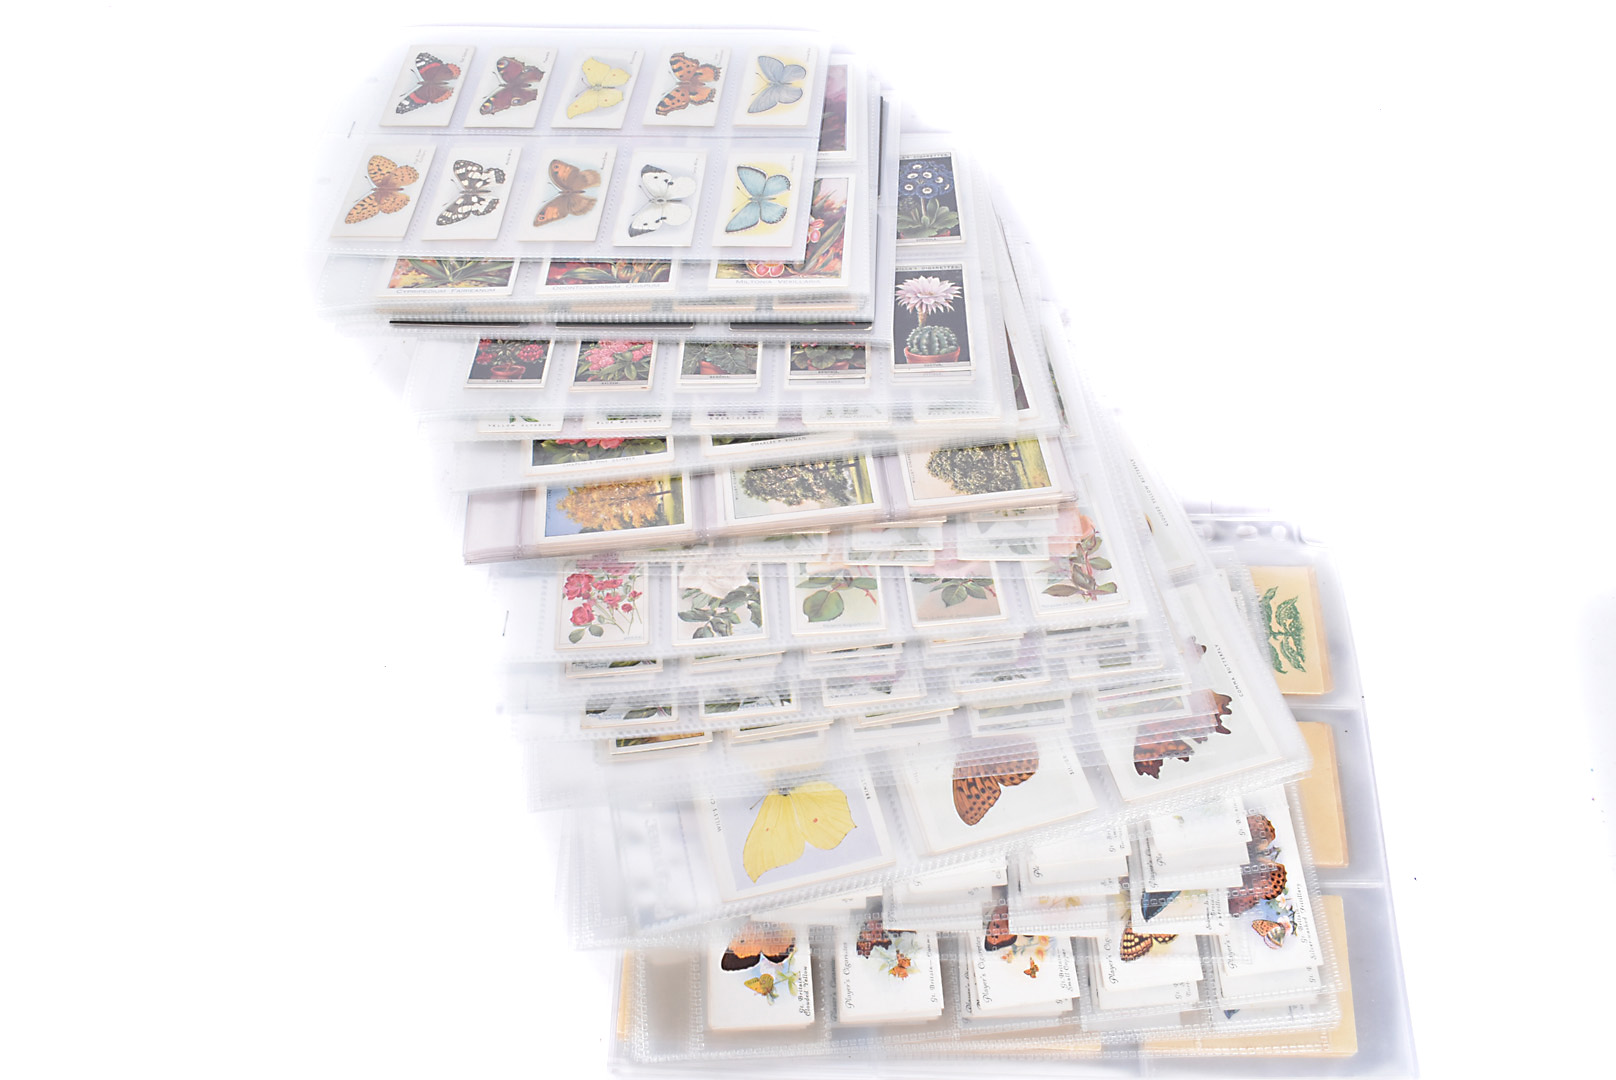 Butterflies and Botanical Themed Cigarette Trade Cards and Silks, various sets comprising Players